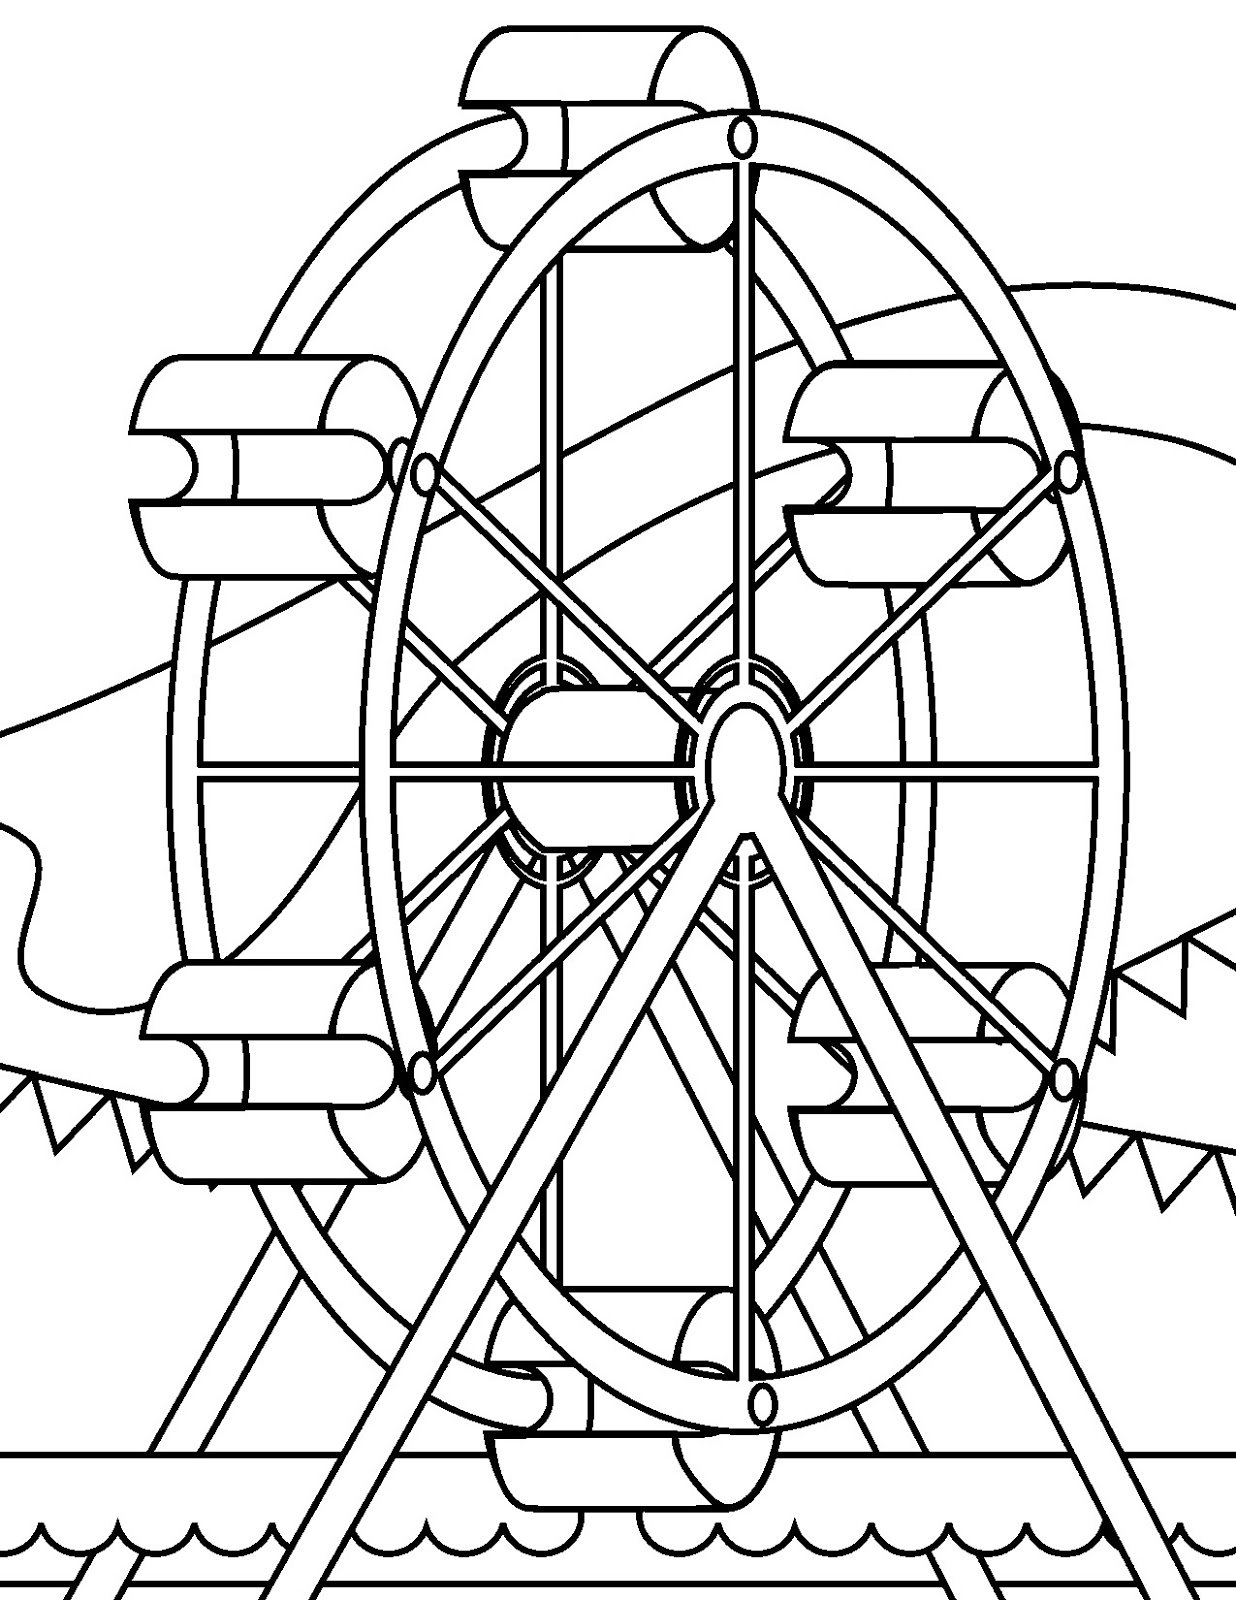 Disney world ferris wheel coloring pages for Wheel coloring page